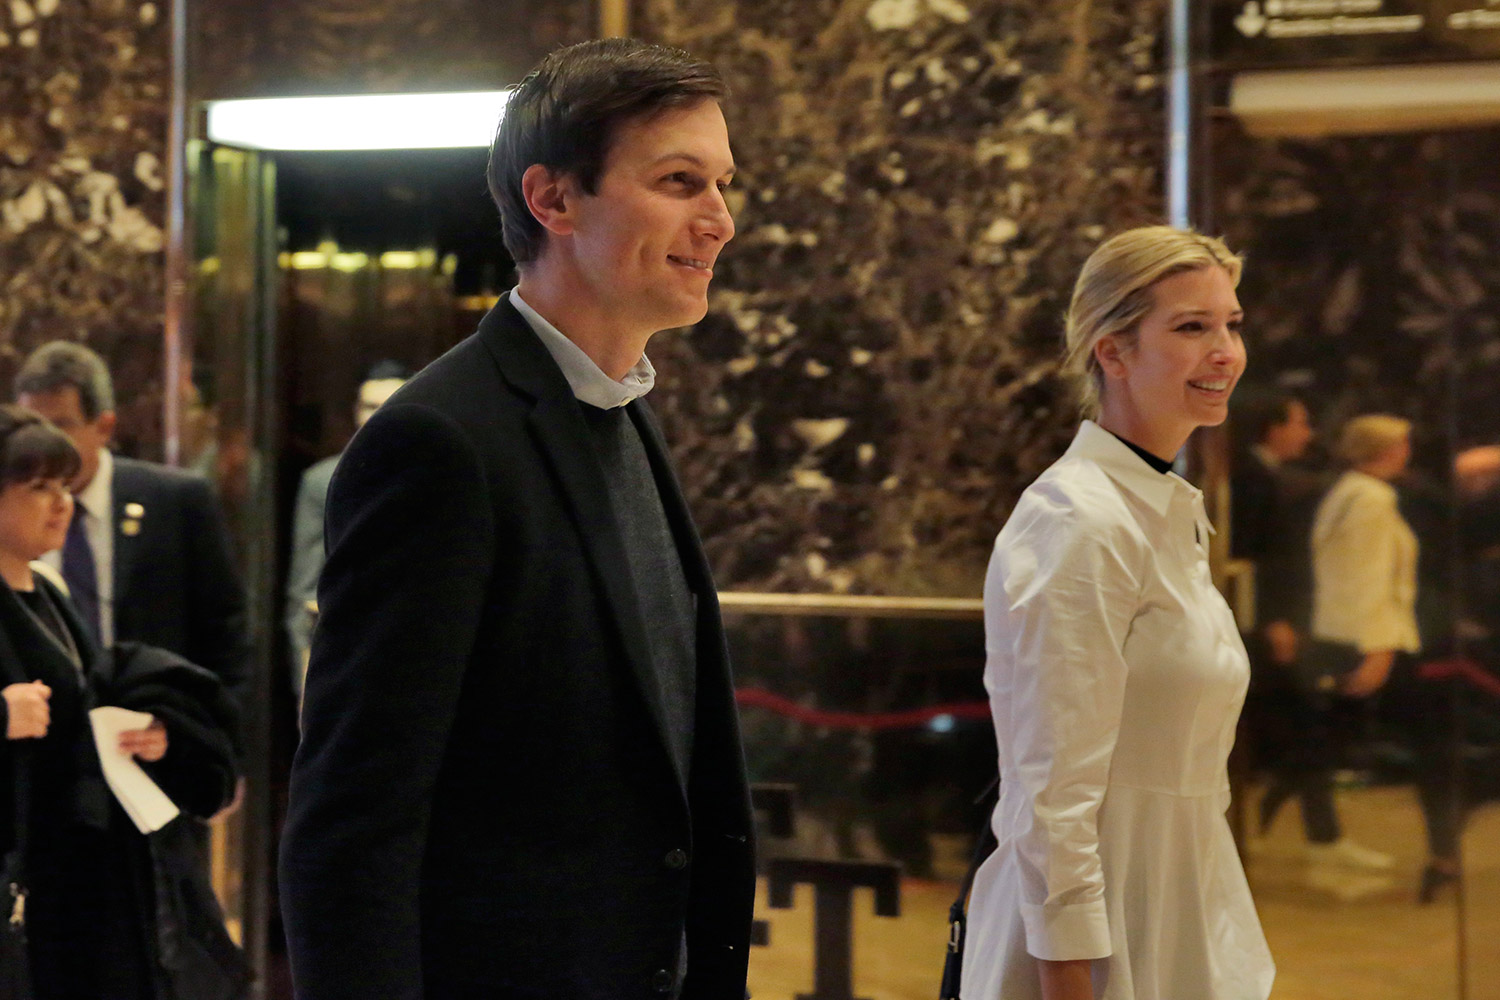 Trump names son-in-law Jared Kushner White House senior adviser